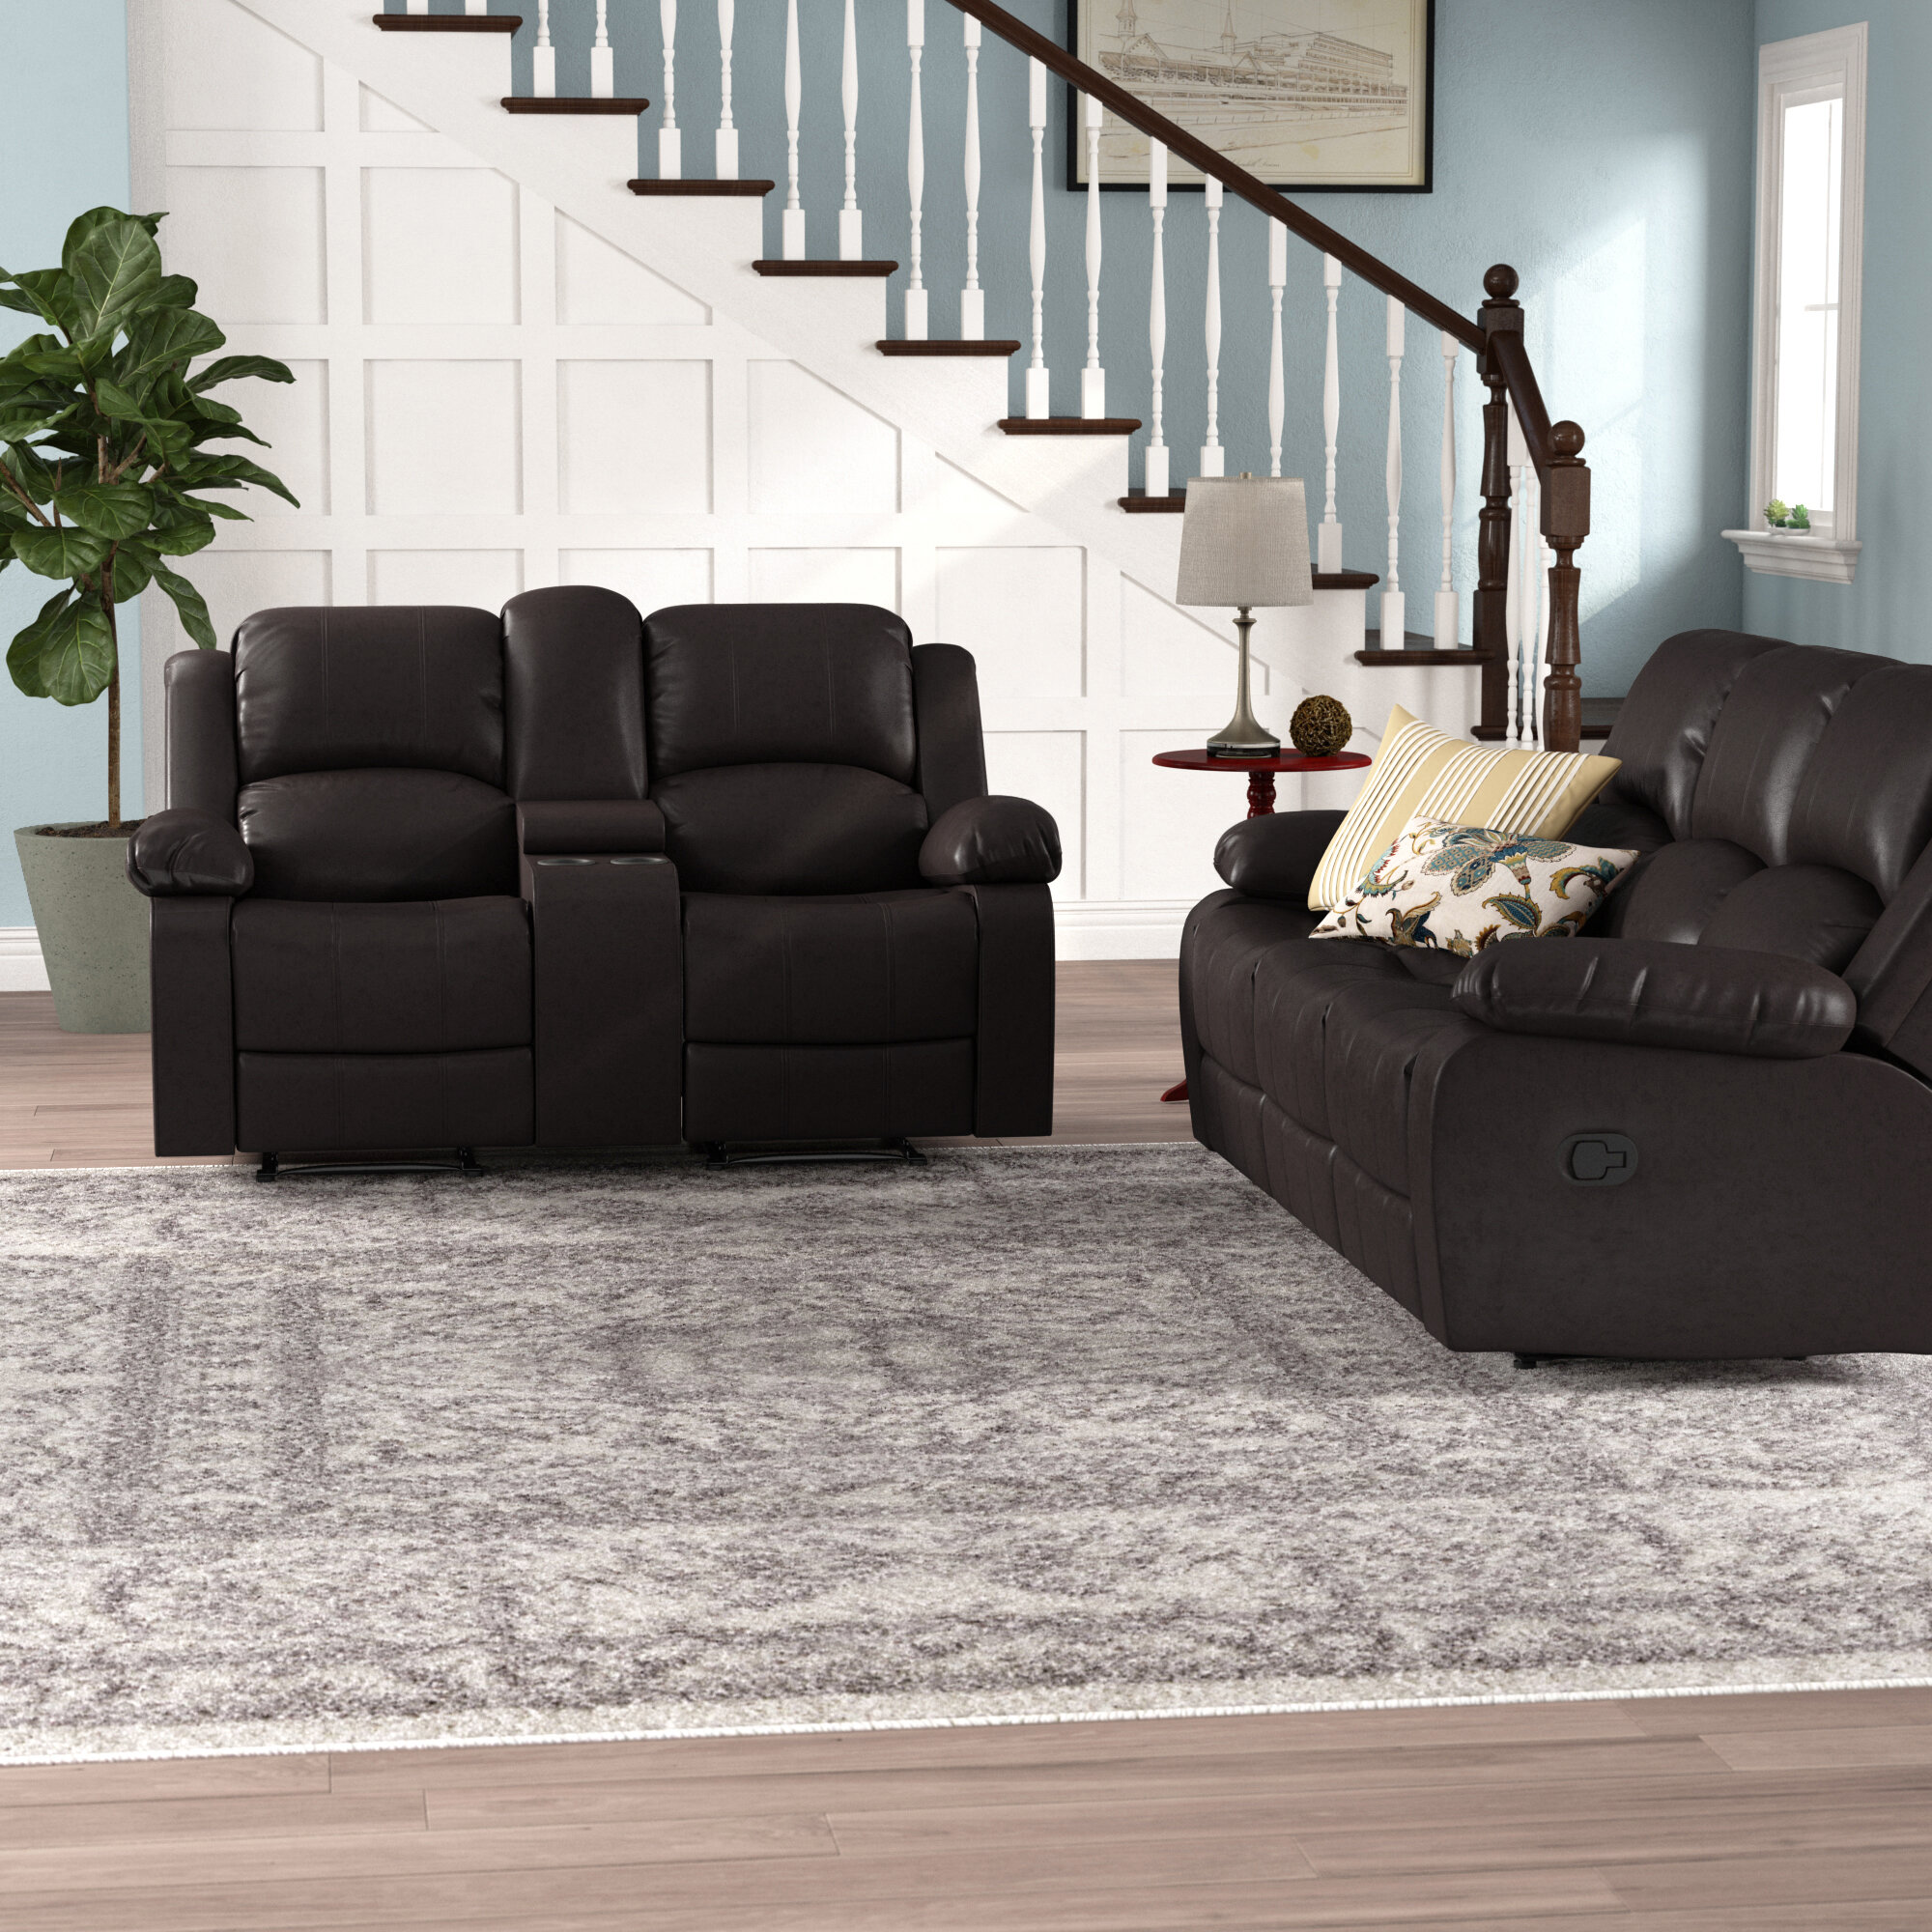 Red Barrel Studio Harton 2 Piece Faux Leather Reclining Living Room Set Reviews Wayfair